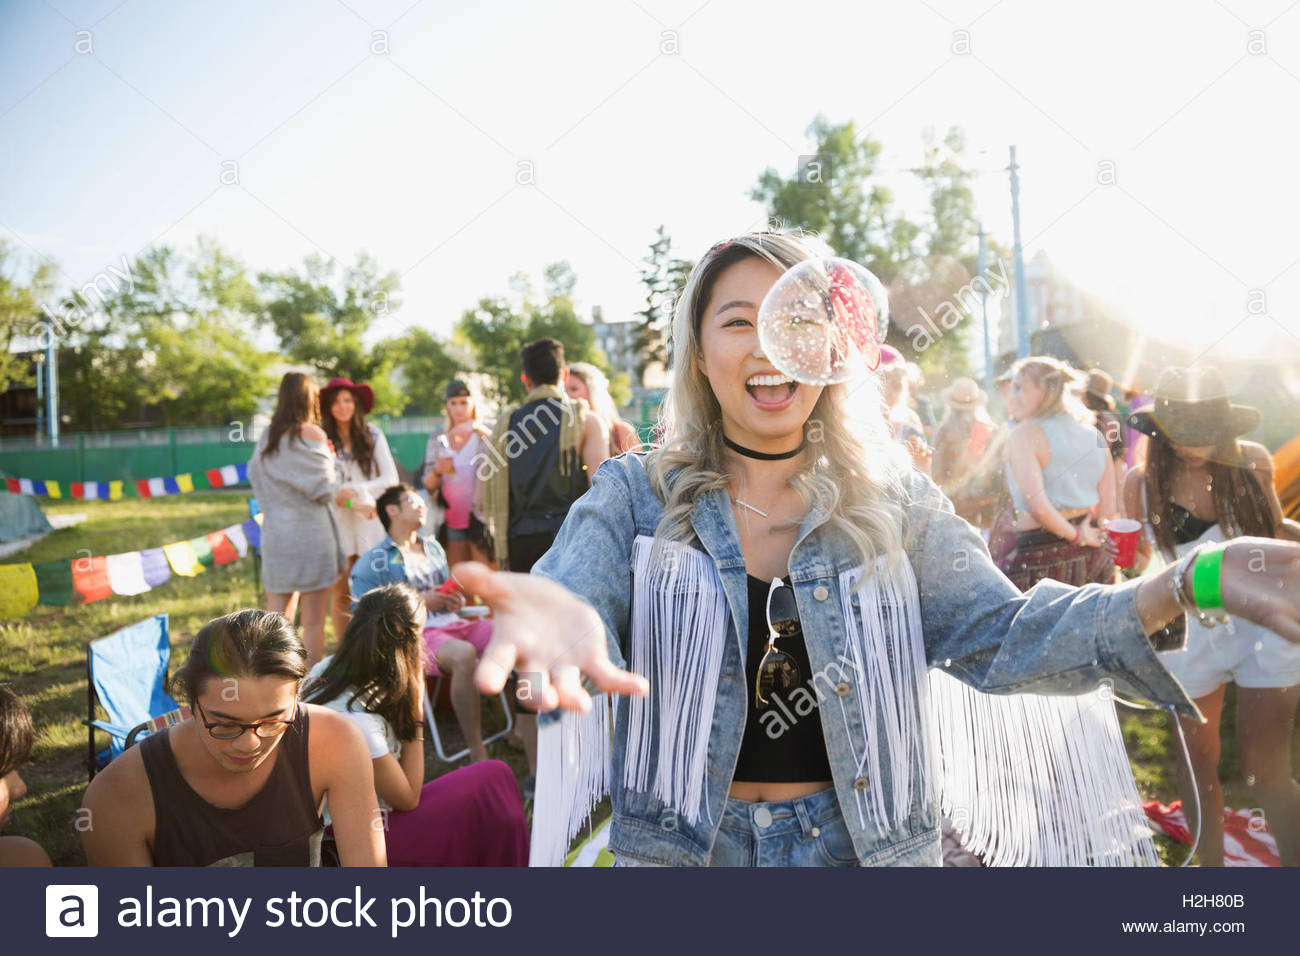 Playful young woman with bubbles at summer music festival campsite - Stock Image